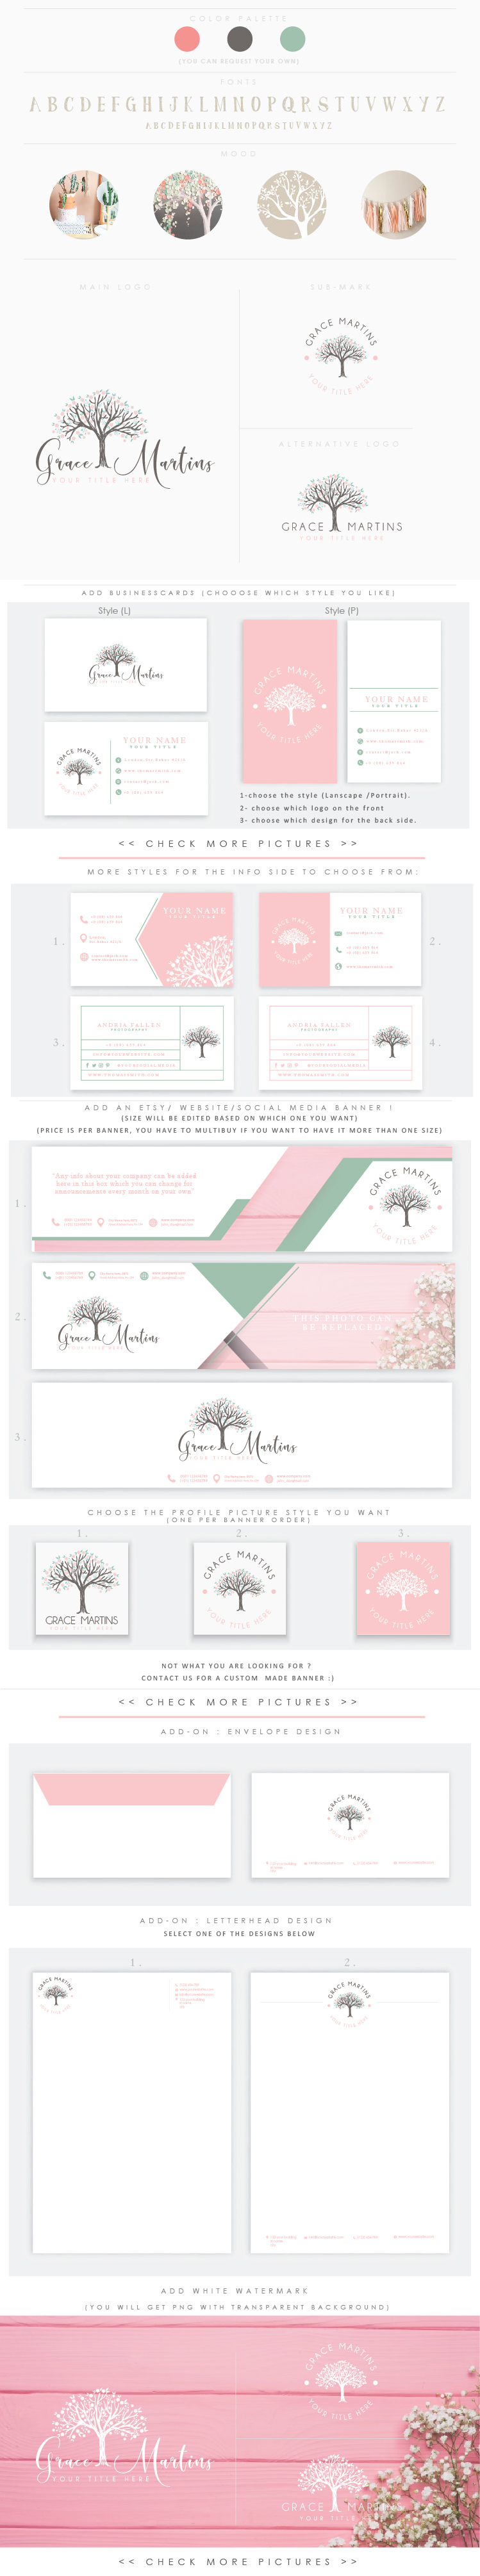 Full bloom tree 2 Feminine logo Watercolor Logo Design